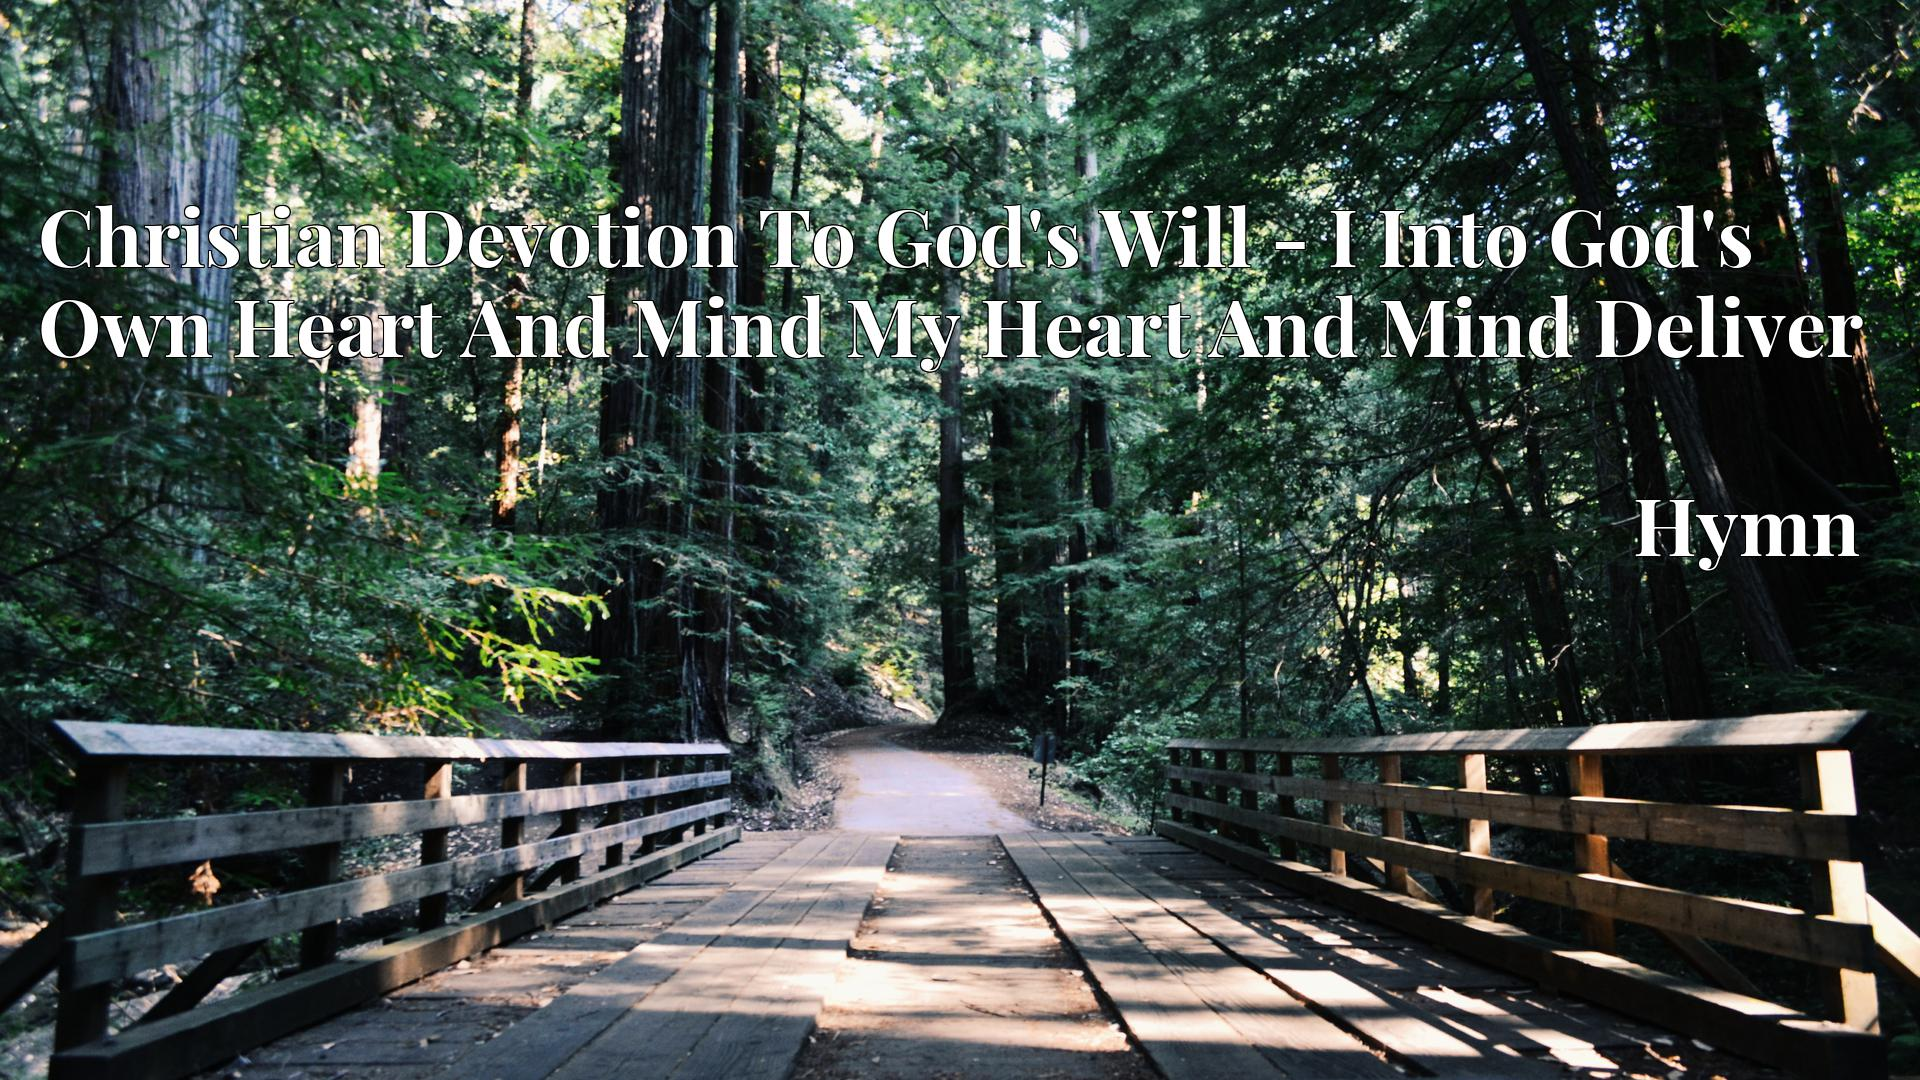 Christian Devotion To God's Will - I Into God's Own Heart And Mind My Heart And Mind Deliver - Hymn